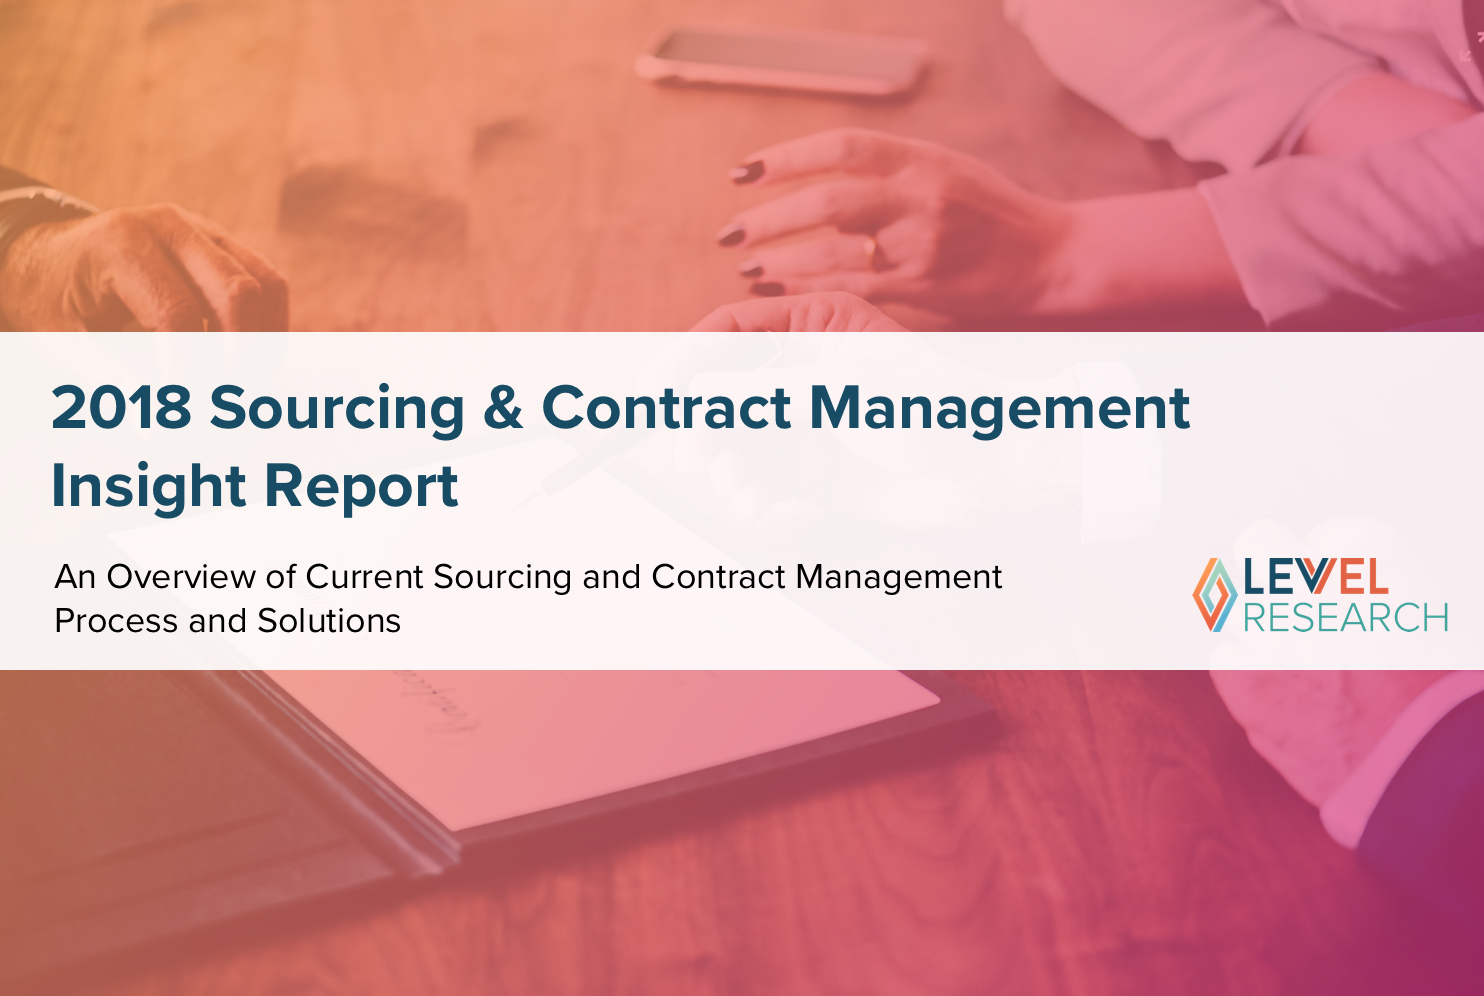 2018 Sourcing and Contract Management Strategies to Watch